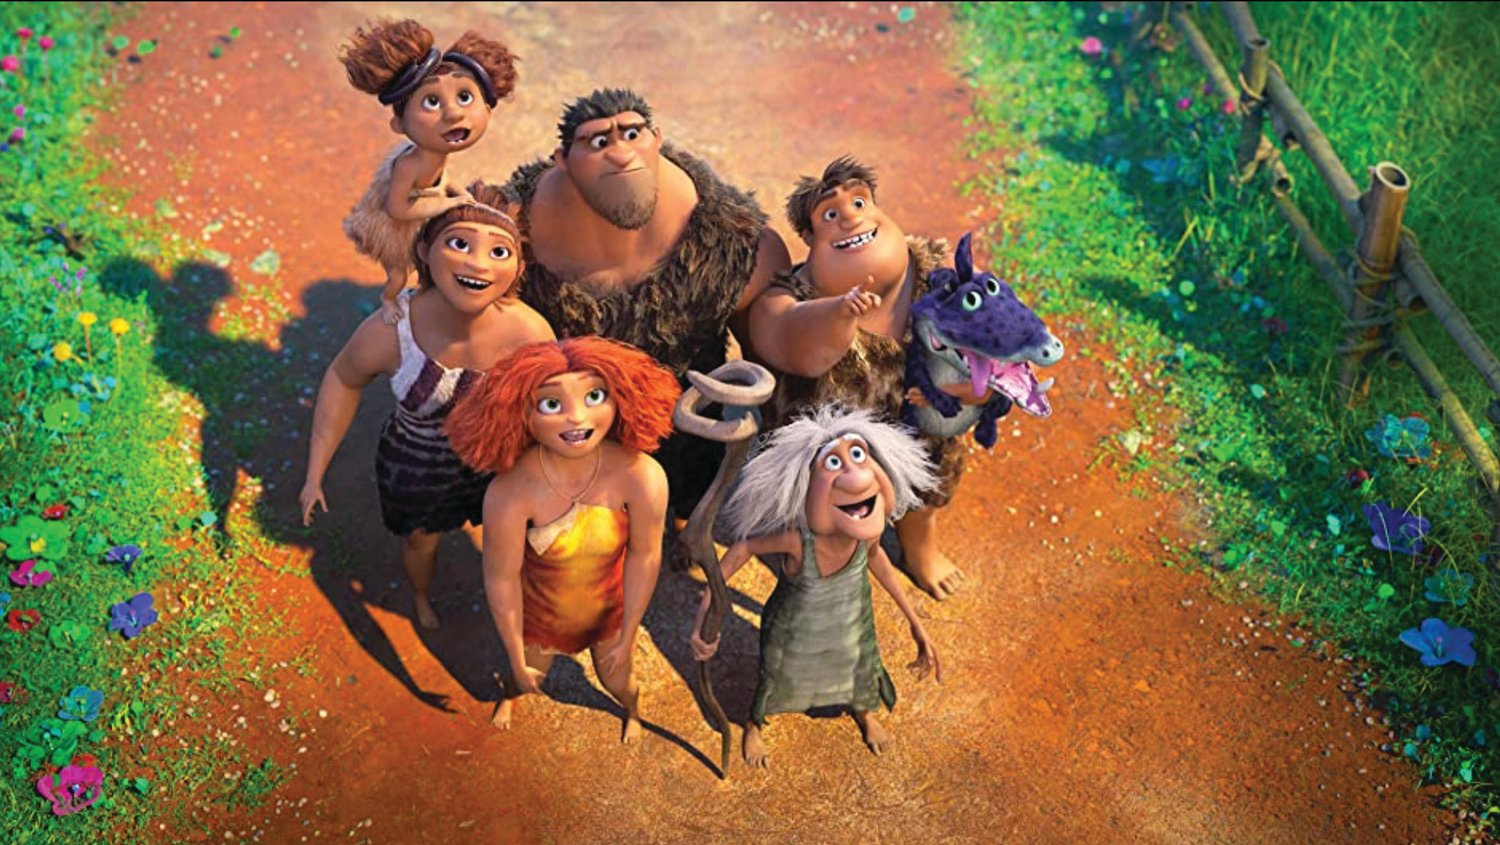 Ryan Reynolds, Emma Stone, Nicolas Cage, Catherine Keener, Clark Duke, Cloris Leachman, Peter Dinklage, Leslie Mann and Kelly Marie Tran star in 'The Croods: A New Age.'